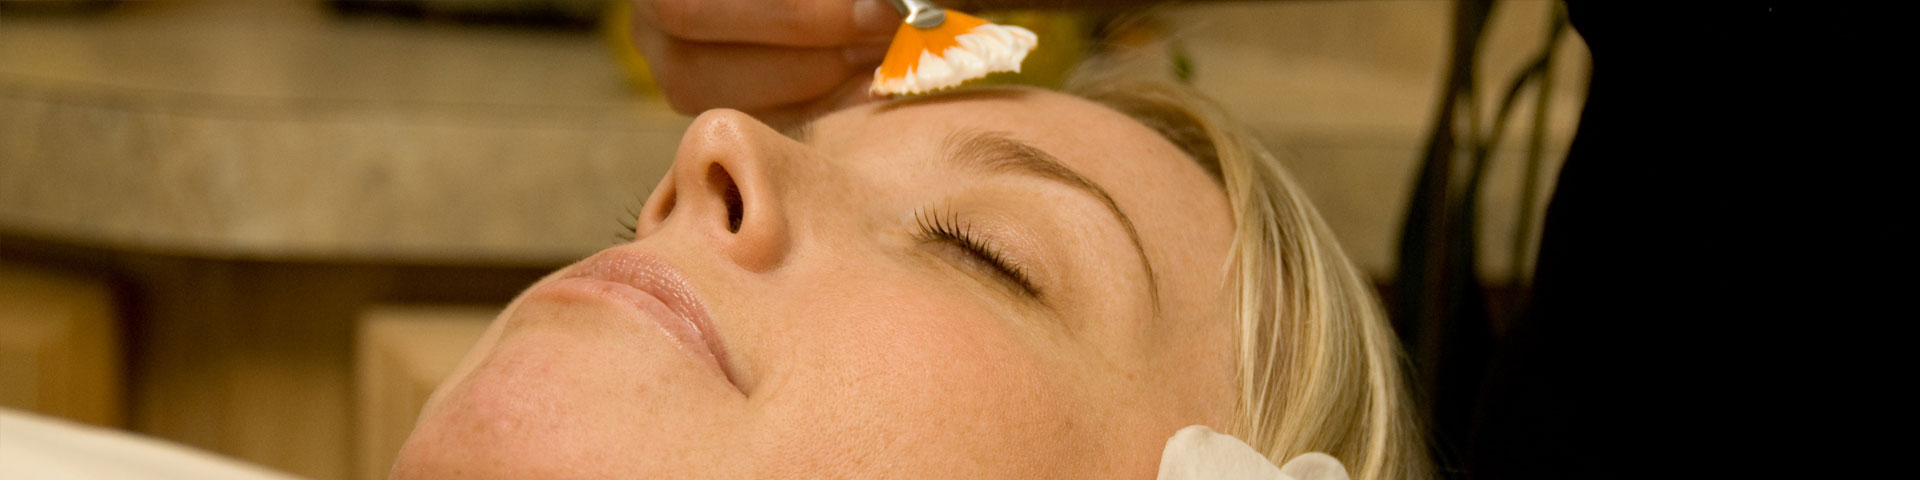 Pure-Skin-Spa-Facial-21